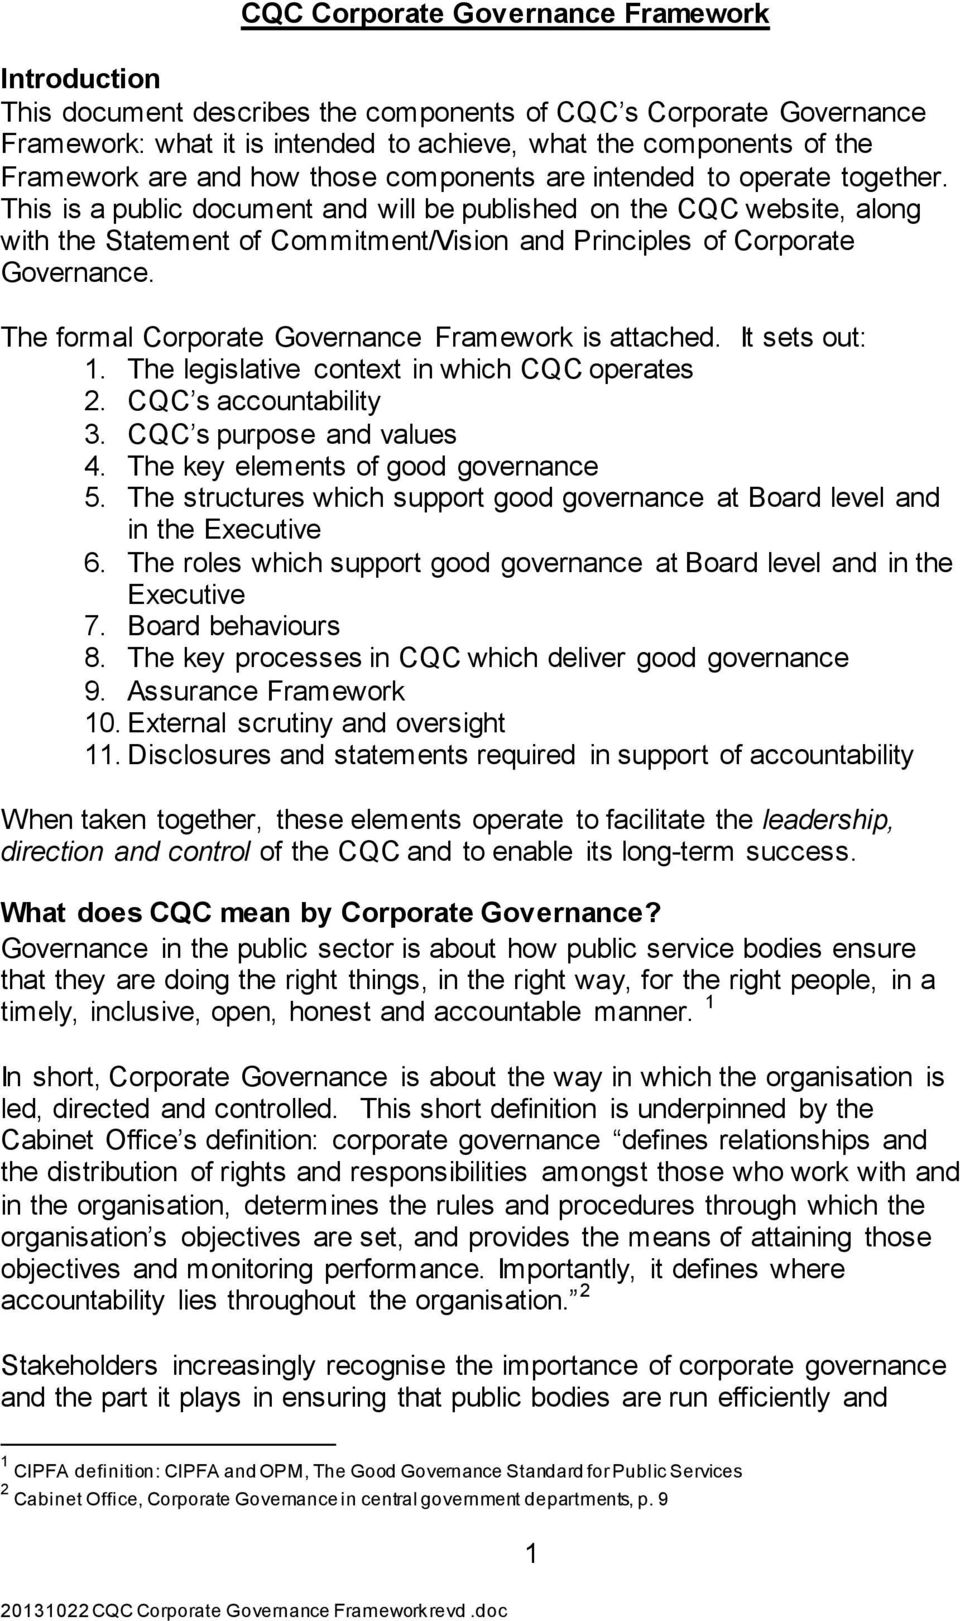 This is a public document and will be published on the CQC website, along with the Statement of Commitment/Vision and Principles of Corporate Governance.